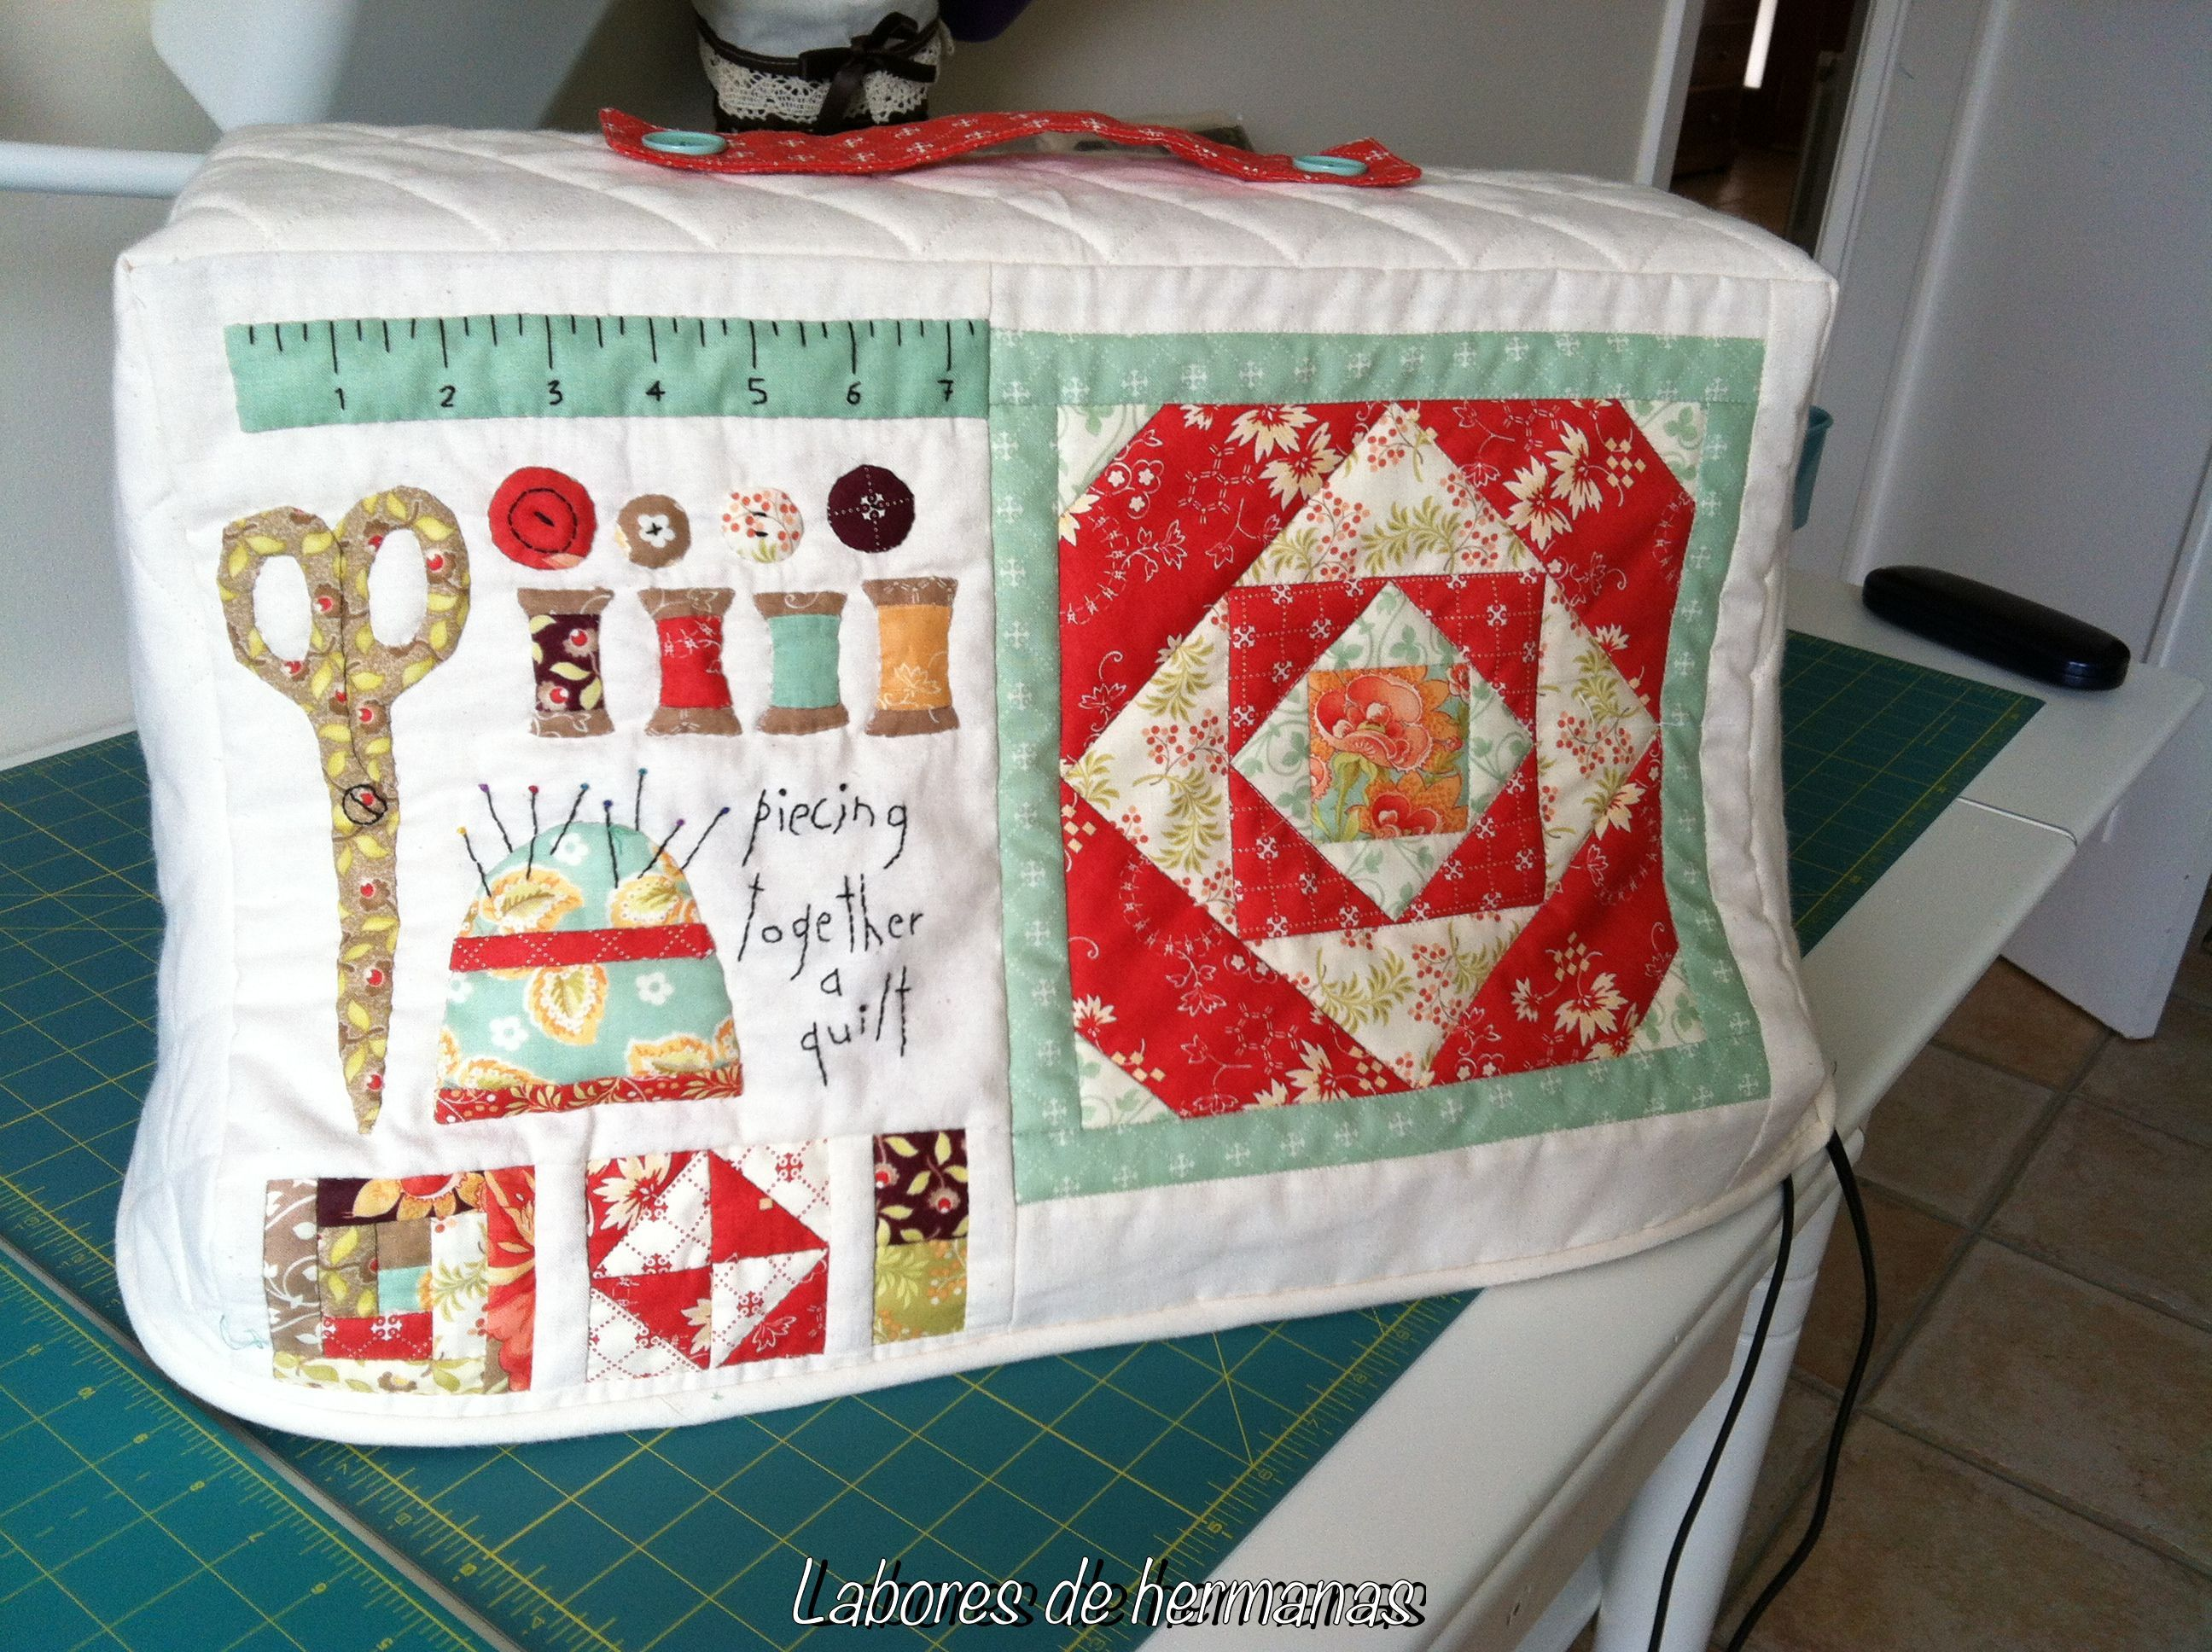 fundas maquinas de coser patchwork - Google Search (With